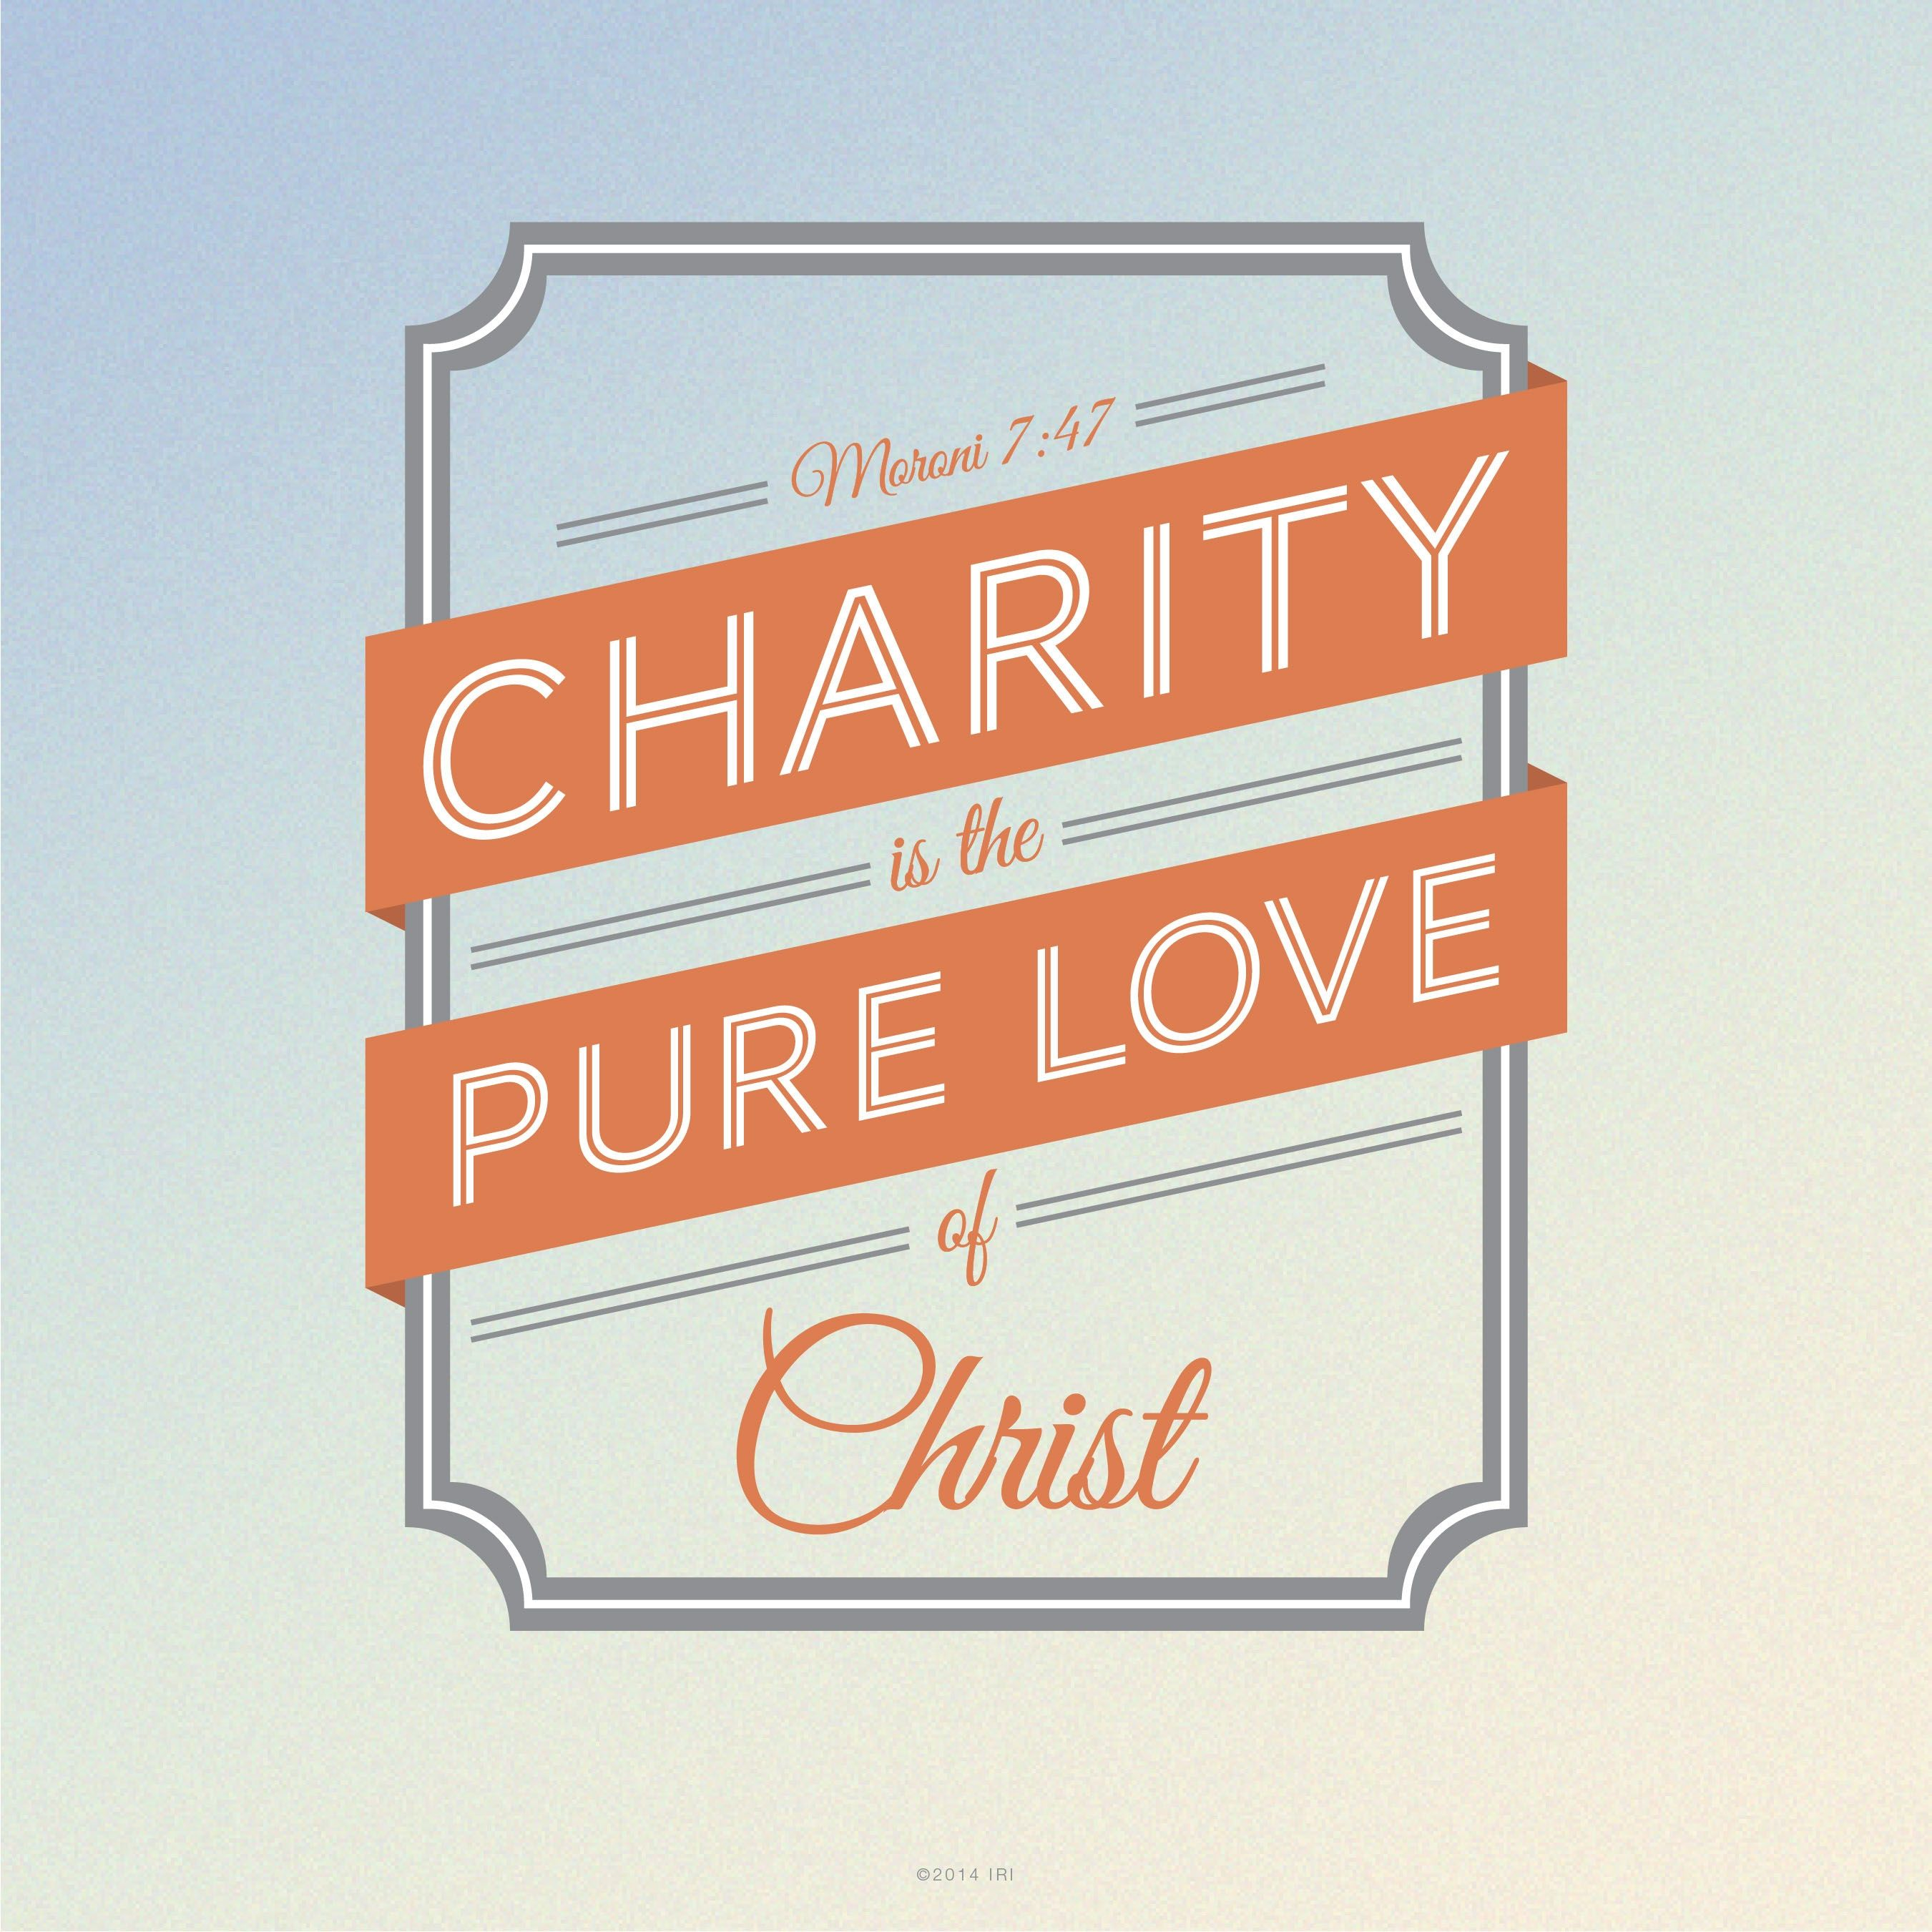 """""""Charity is the pure love of Christ.""""—Moroni 7:47."""